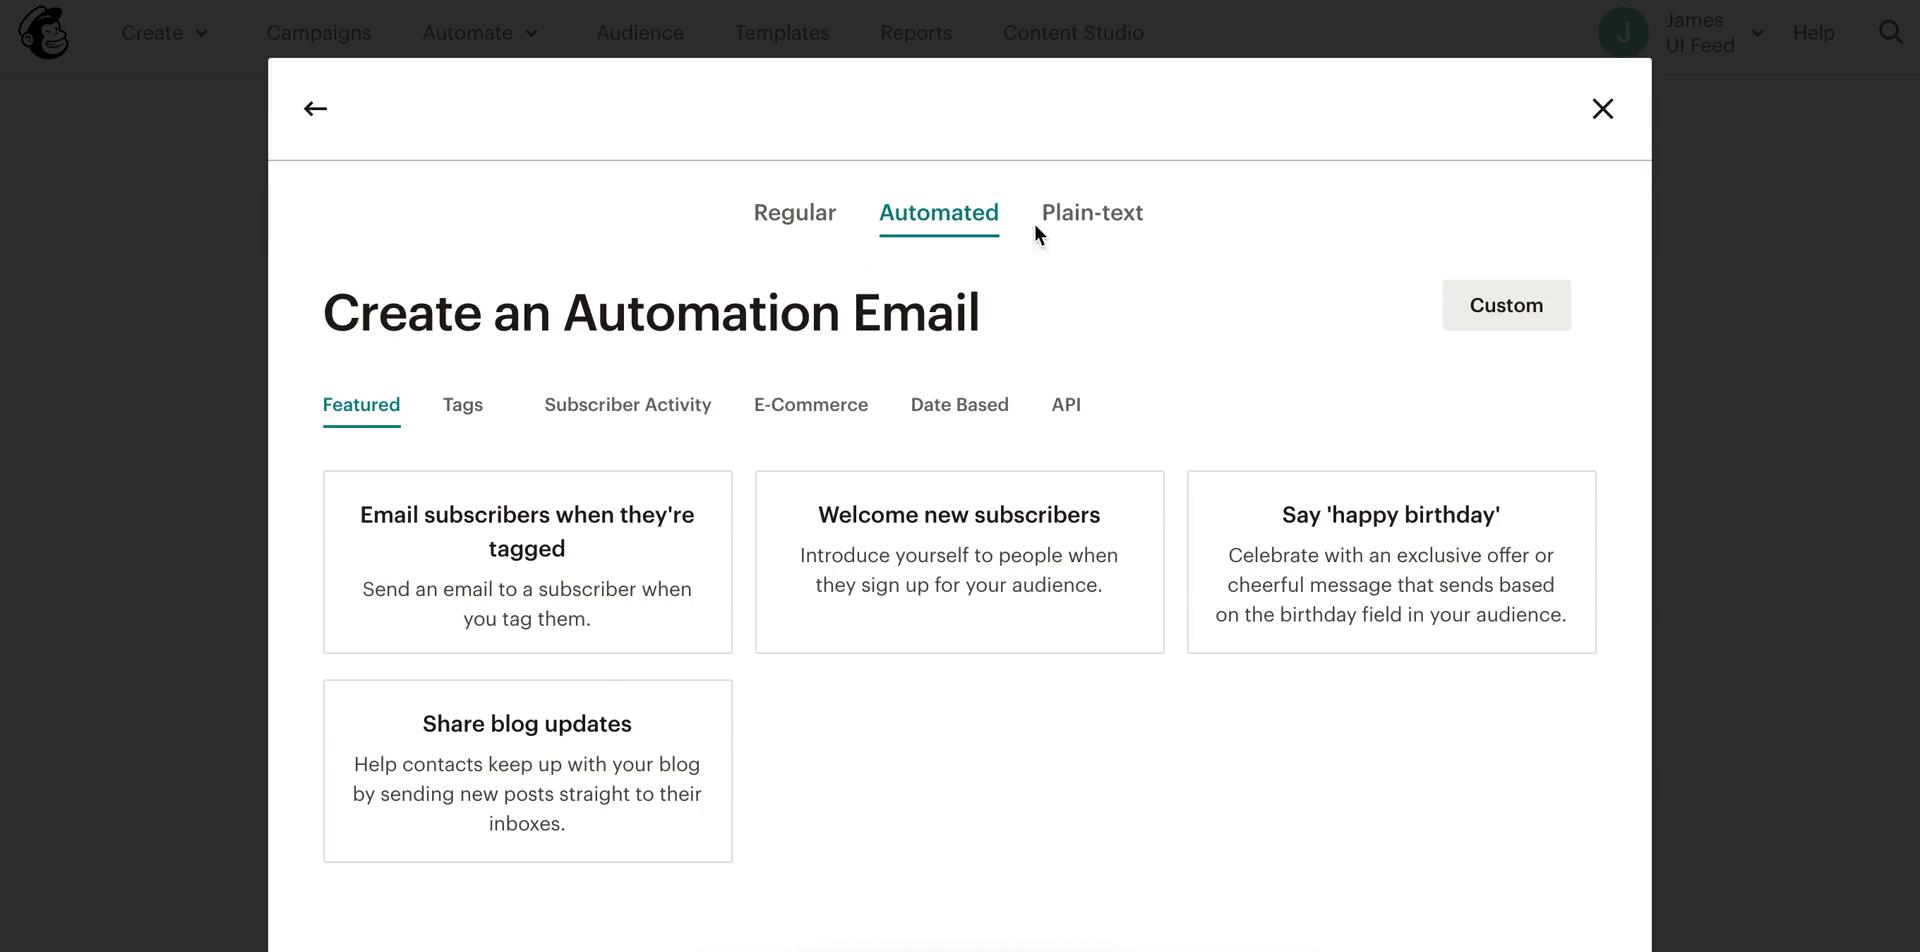 Screenshot of Create automation during General browsing on Mailchimp user flow